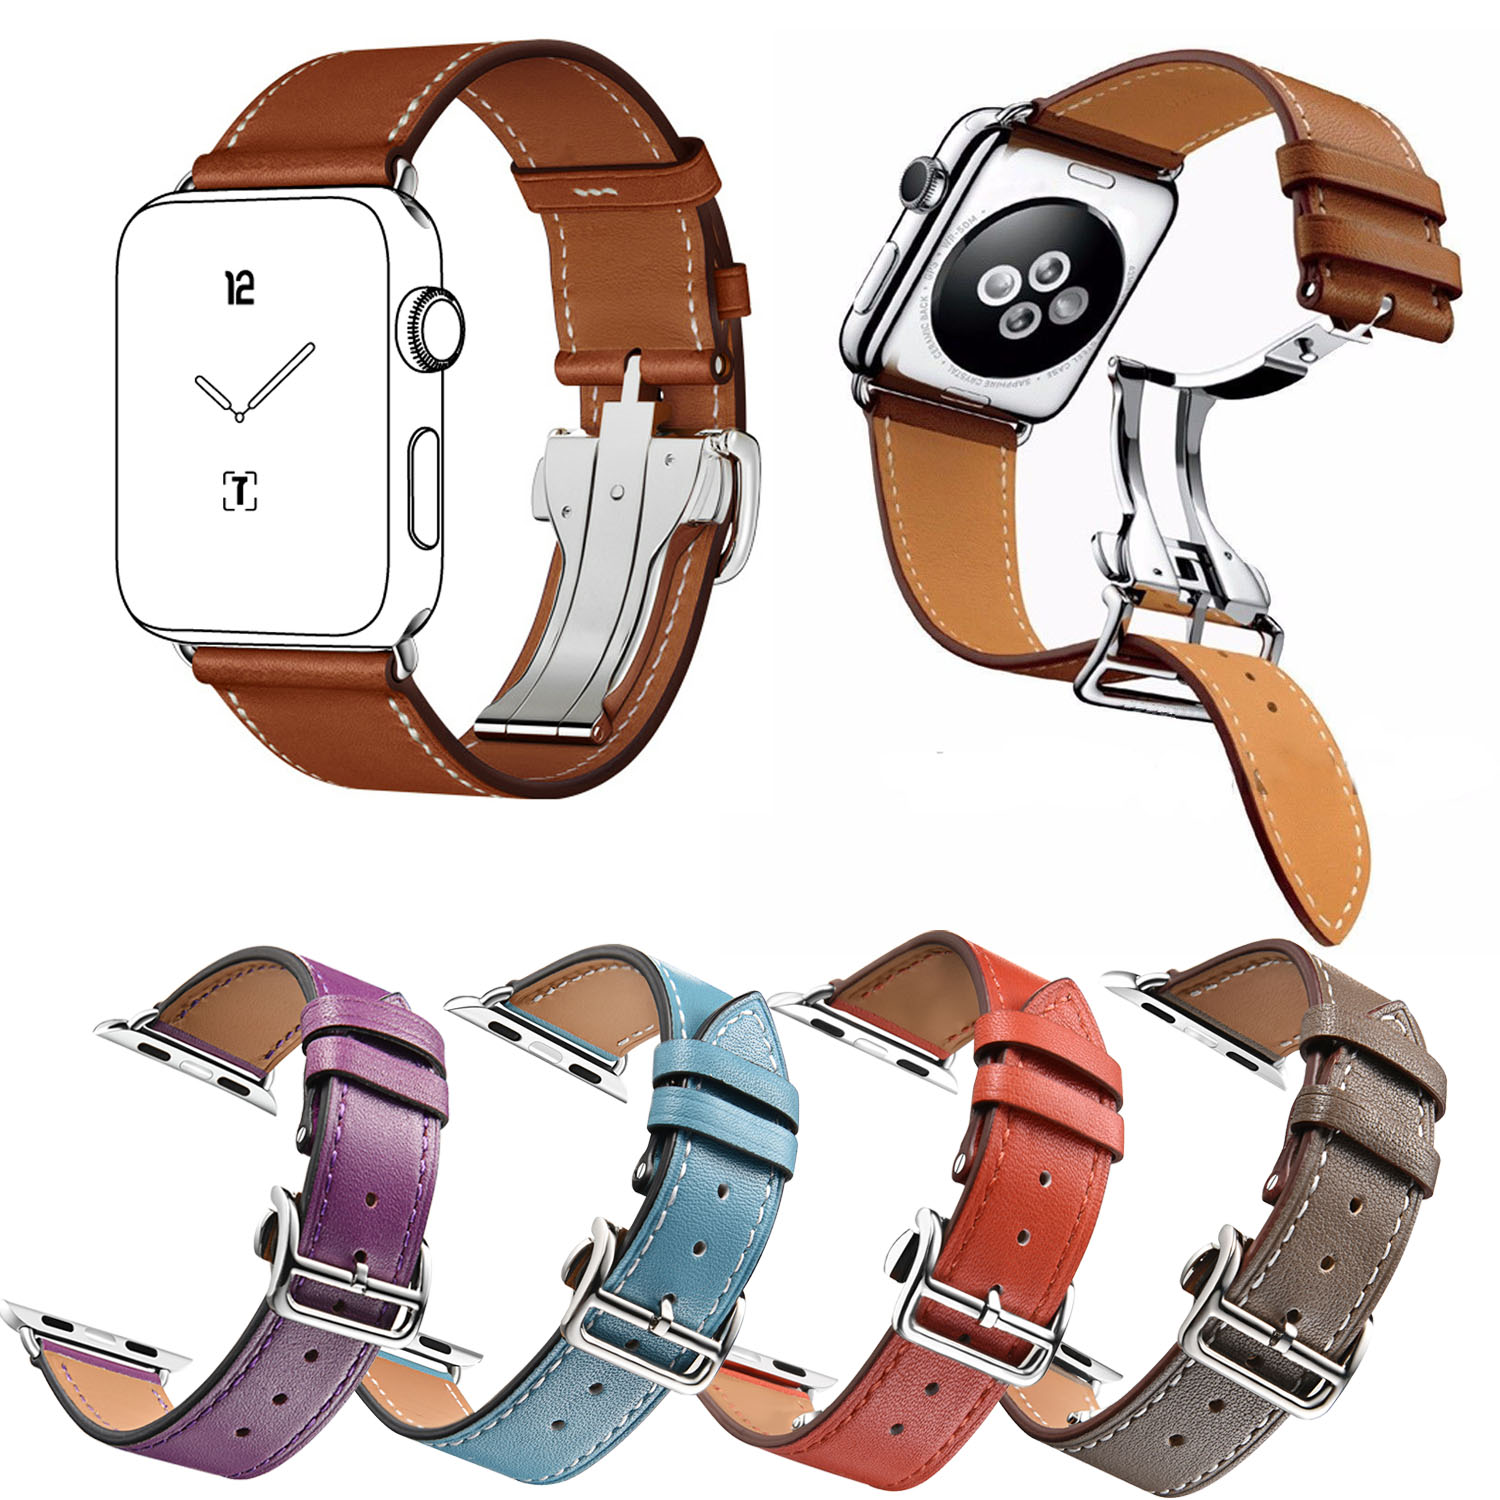 Single Tour Genuine Leather Strap for Apple Watch Band Series 3 2 1 Bracelet for iWatch Belt w Folding Deployment Clasp Buckle все цены